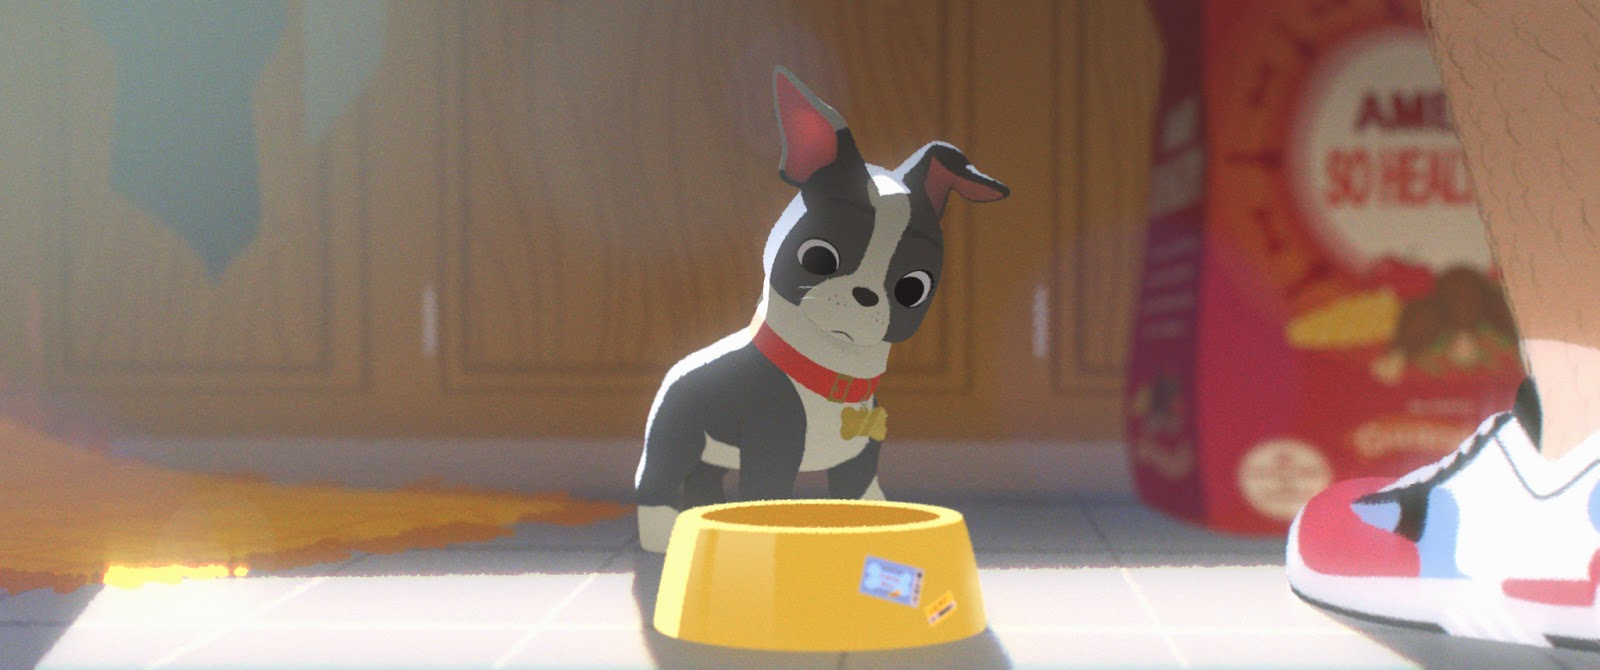 A scene from Feast:  Winston the puppy ponders his empty food dish.